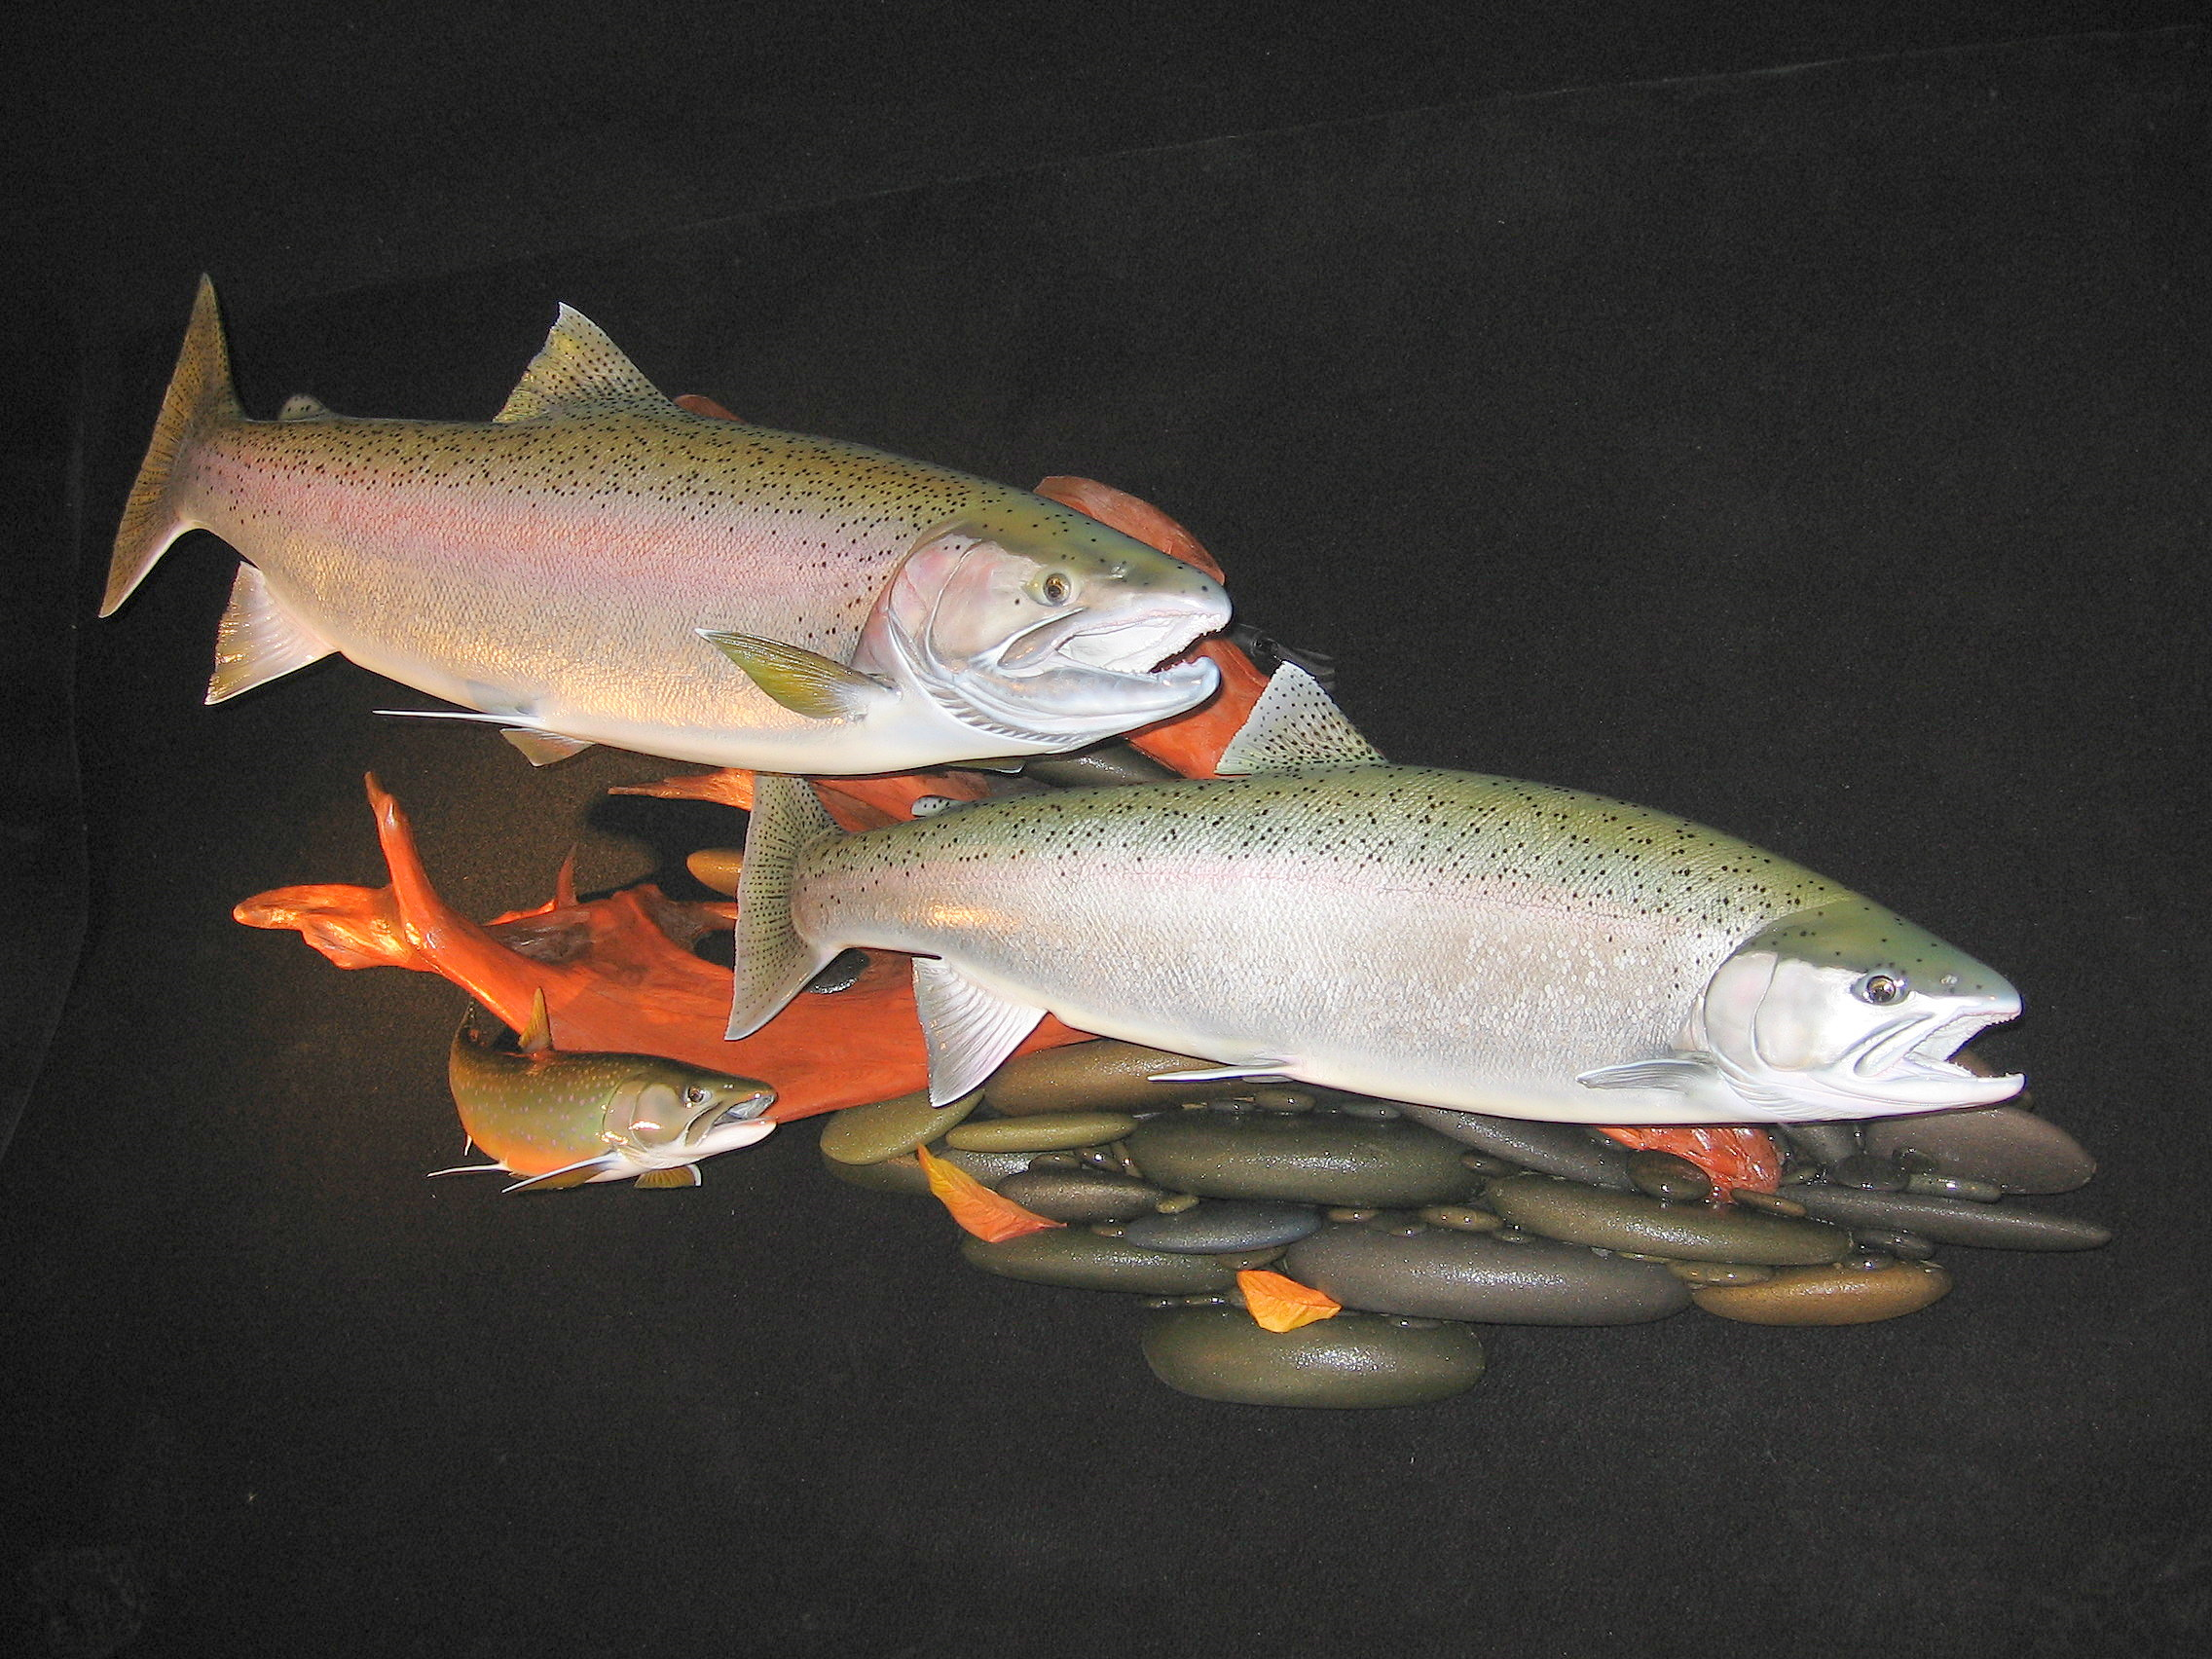 Double Steelhead featured with Dolly Vardon Trout Replica on Riverrock wall display